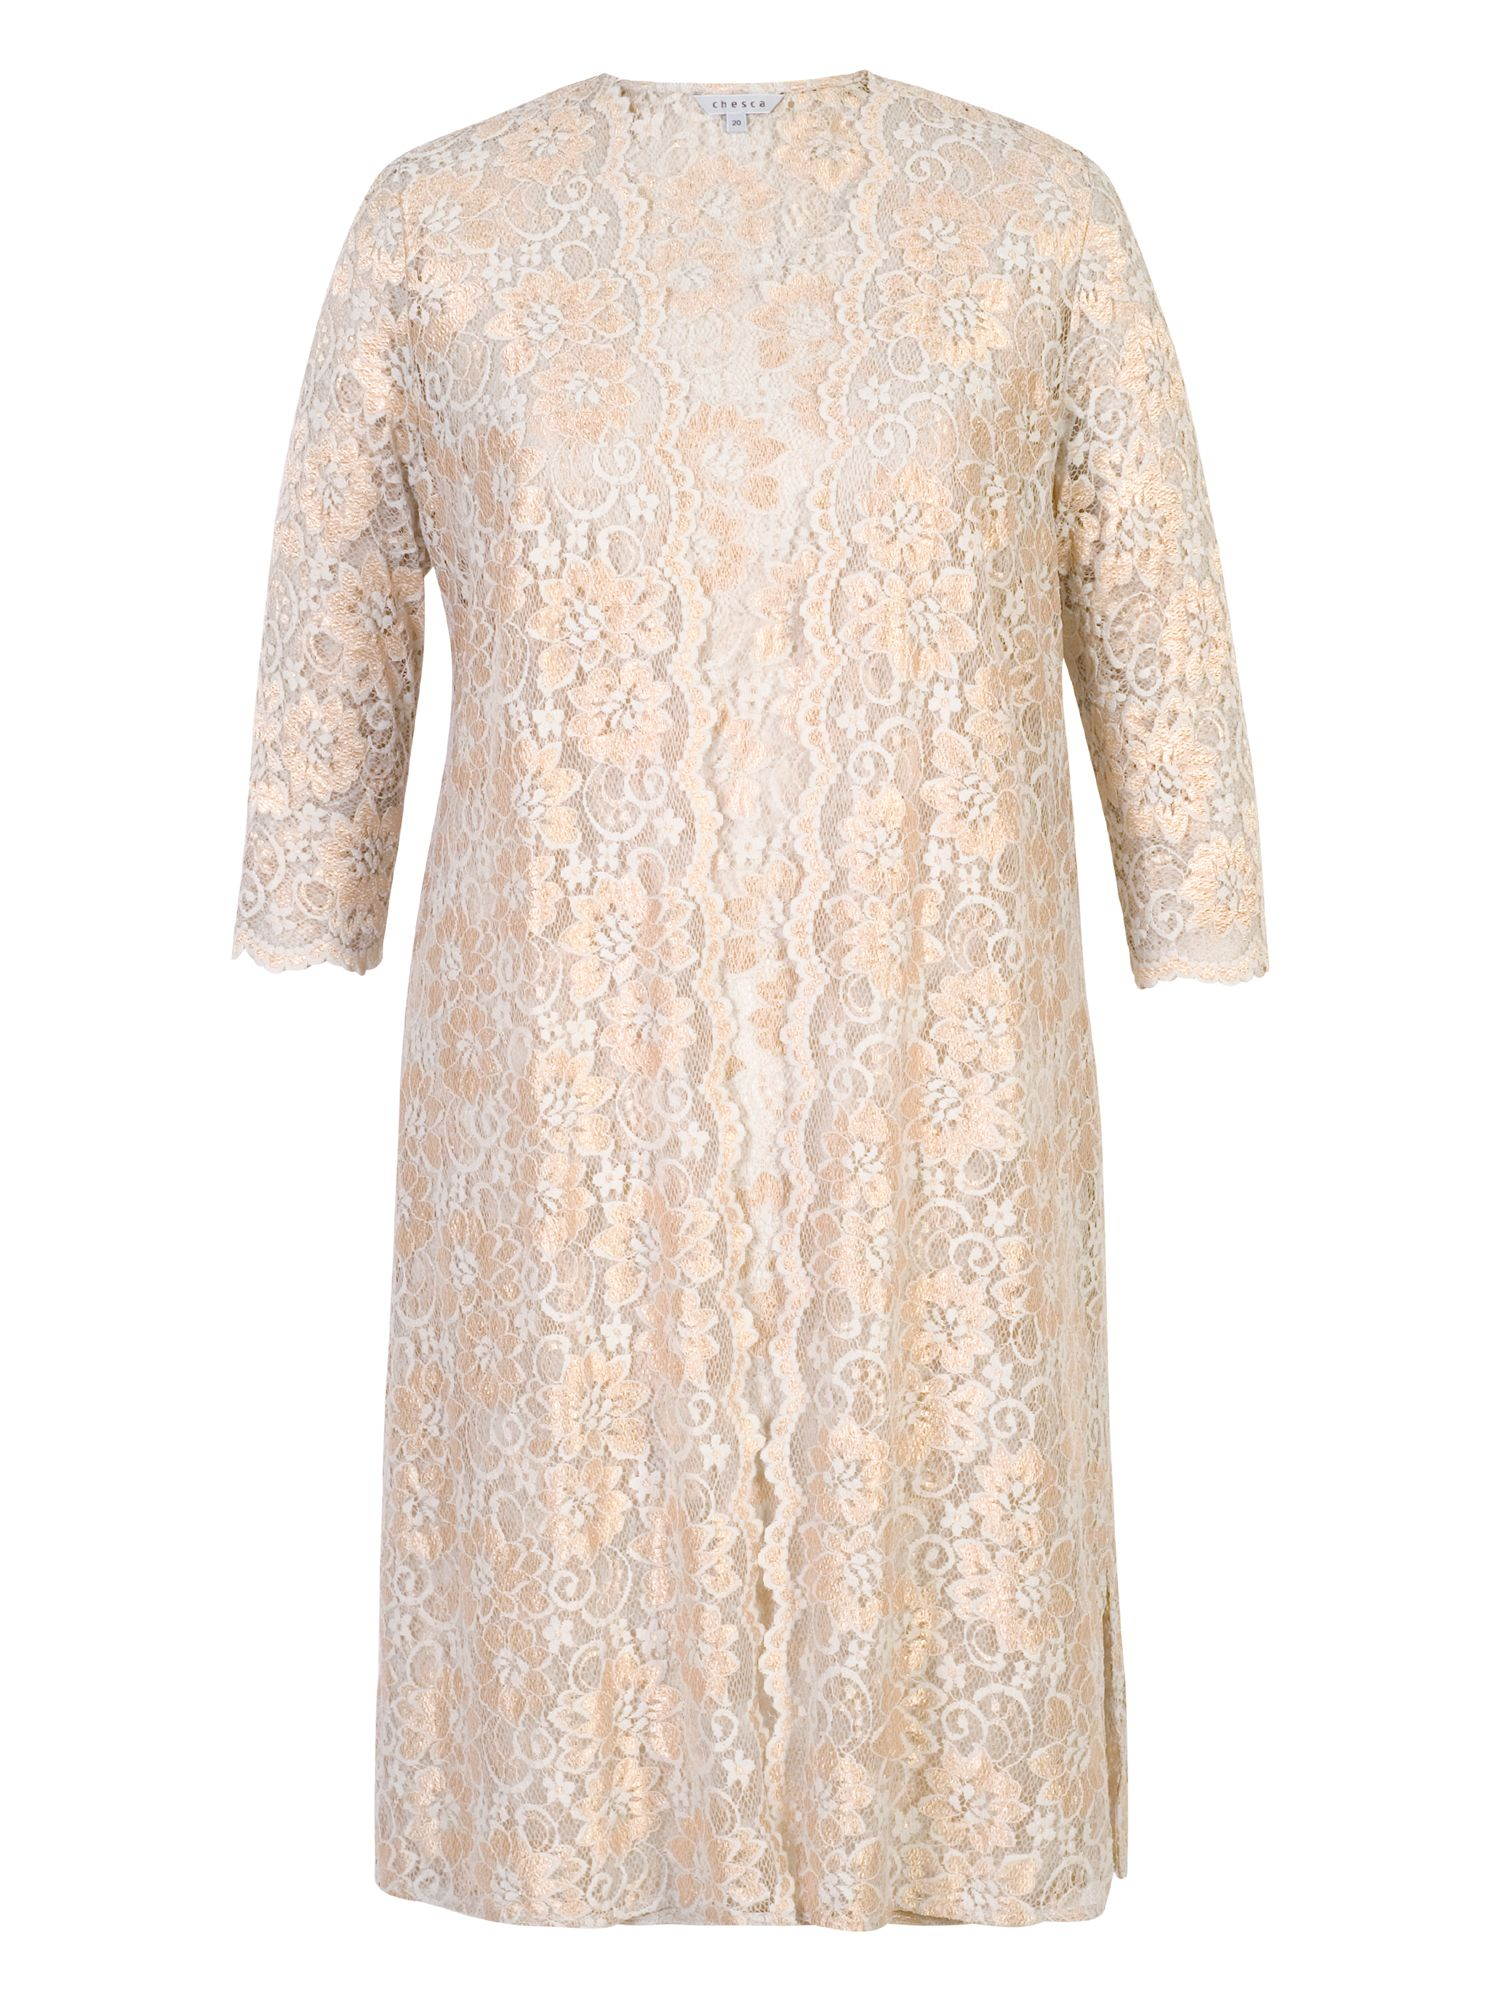 Chesca 2-Tone Scallop Lace Coat, Gold